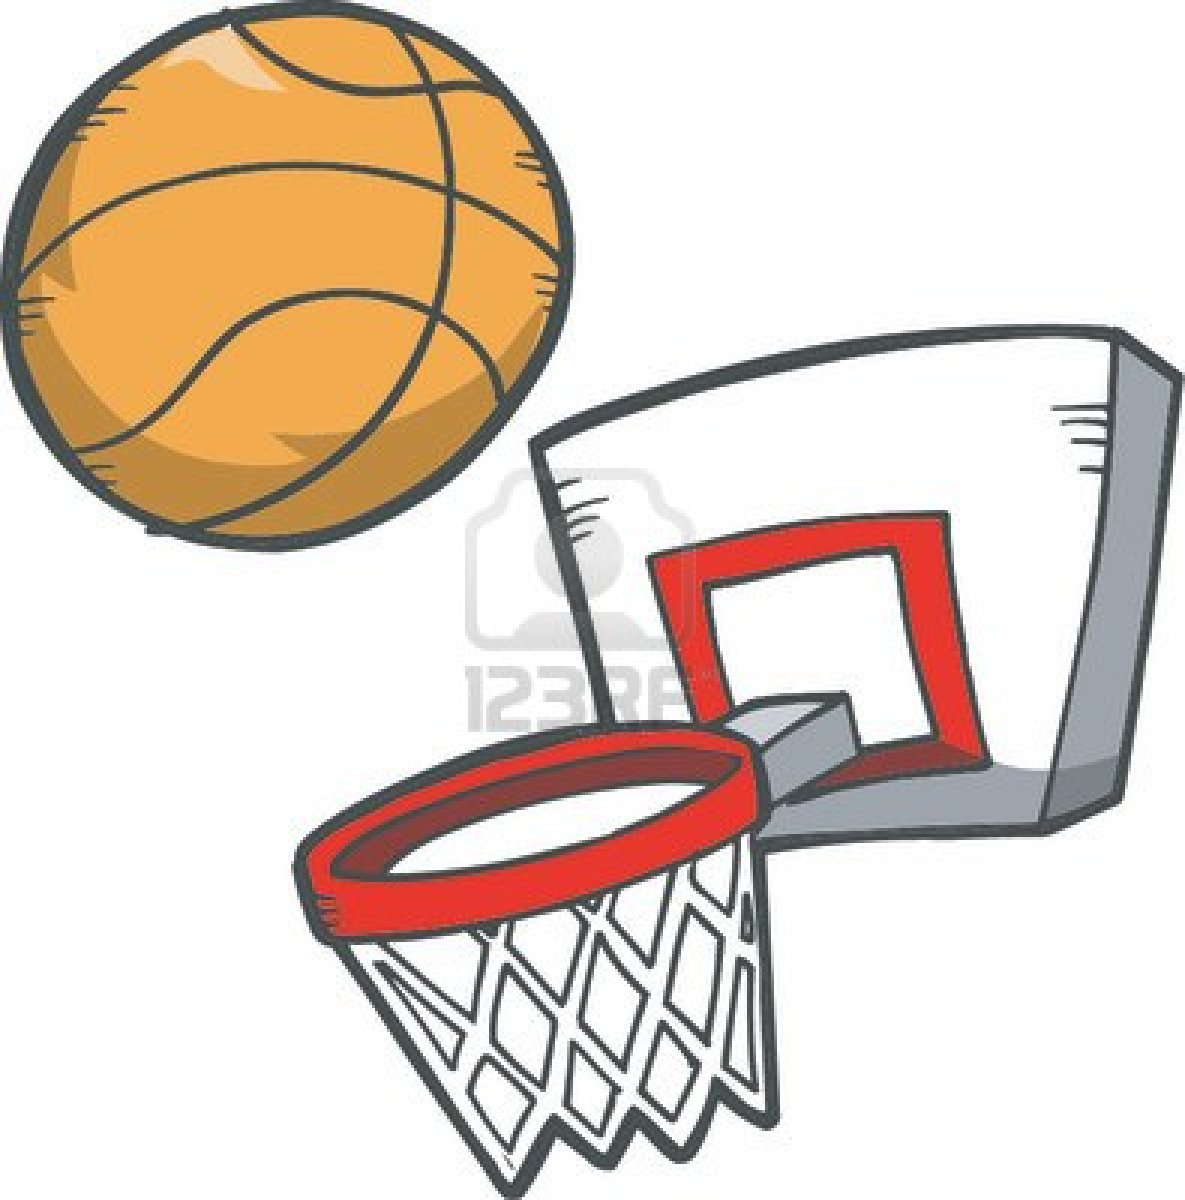 1185x1200 Ball clipart cartoon basketball